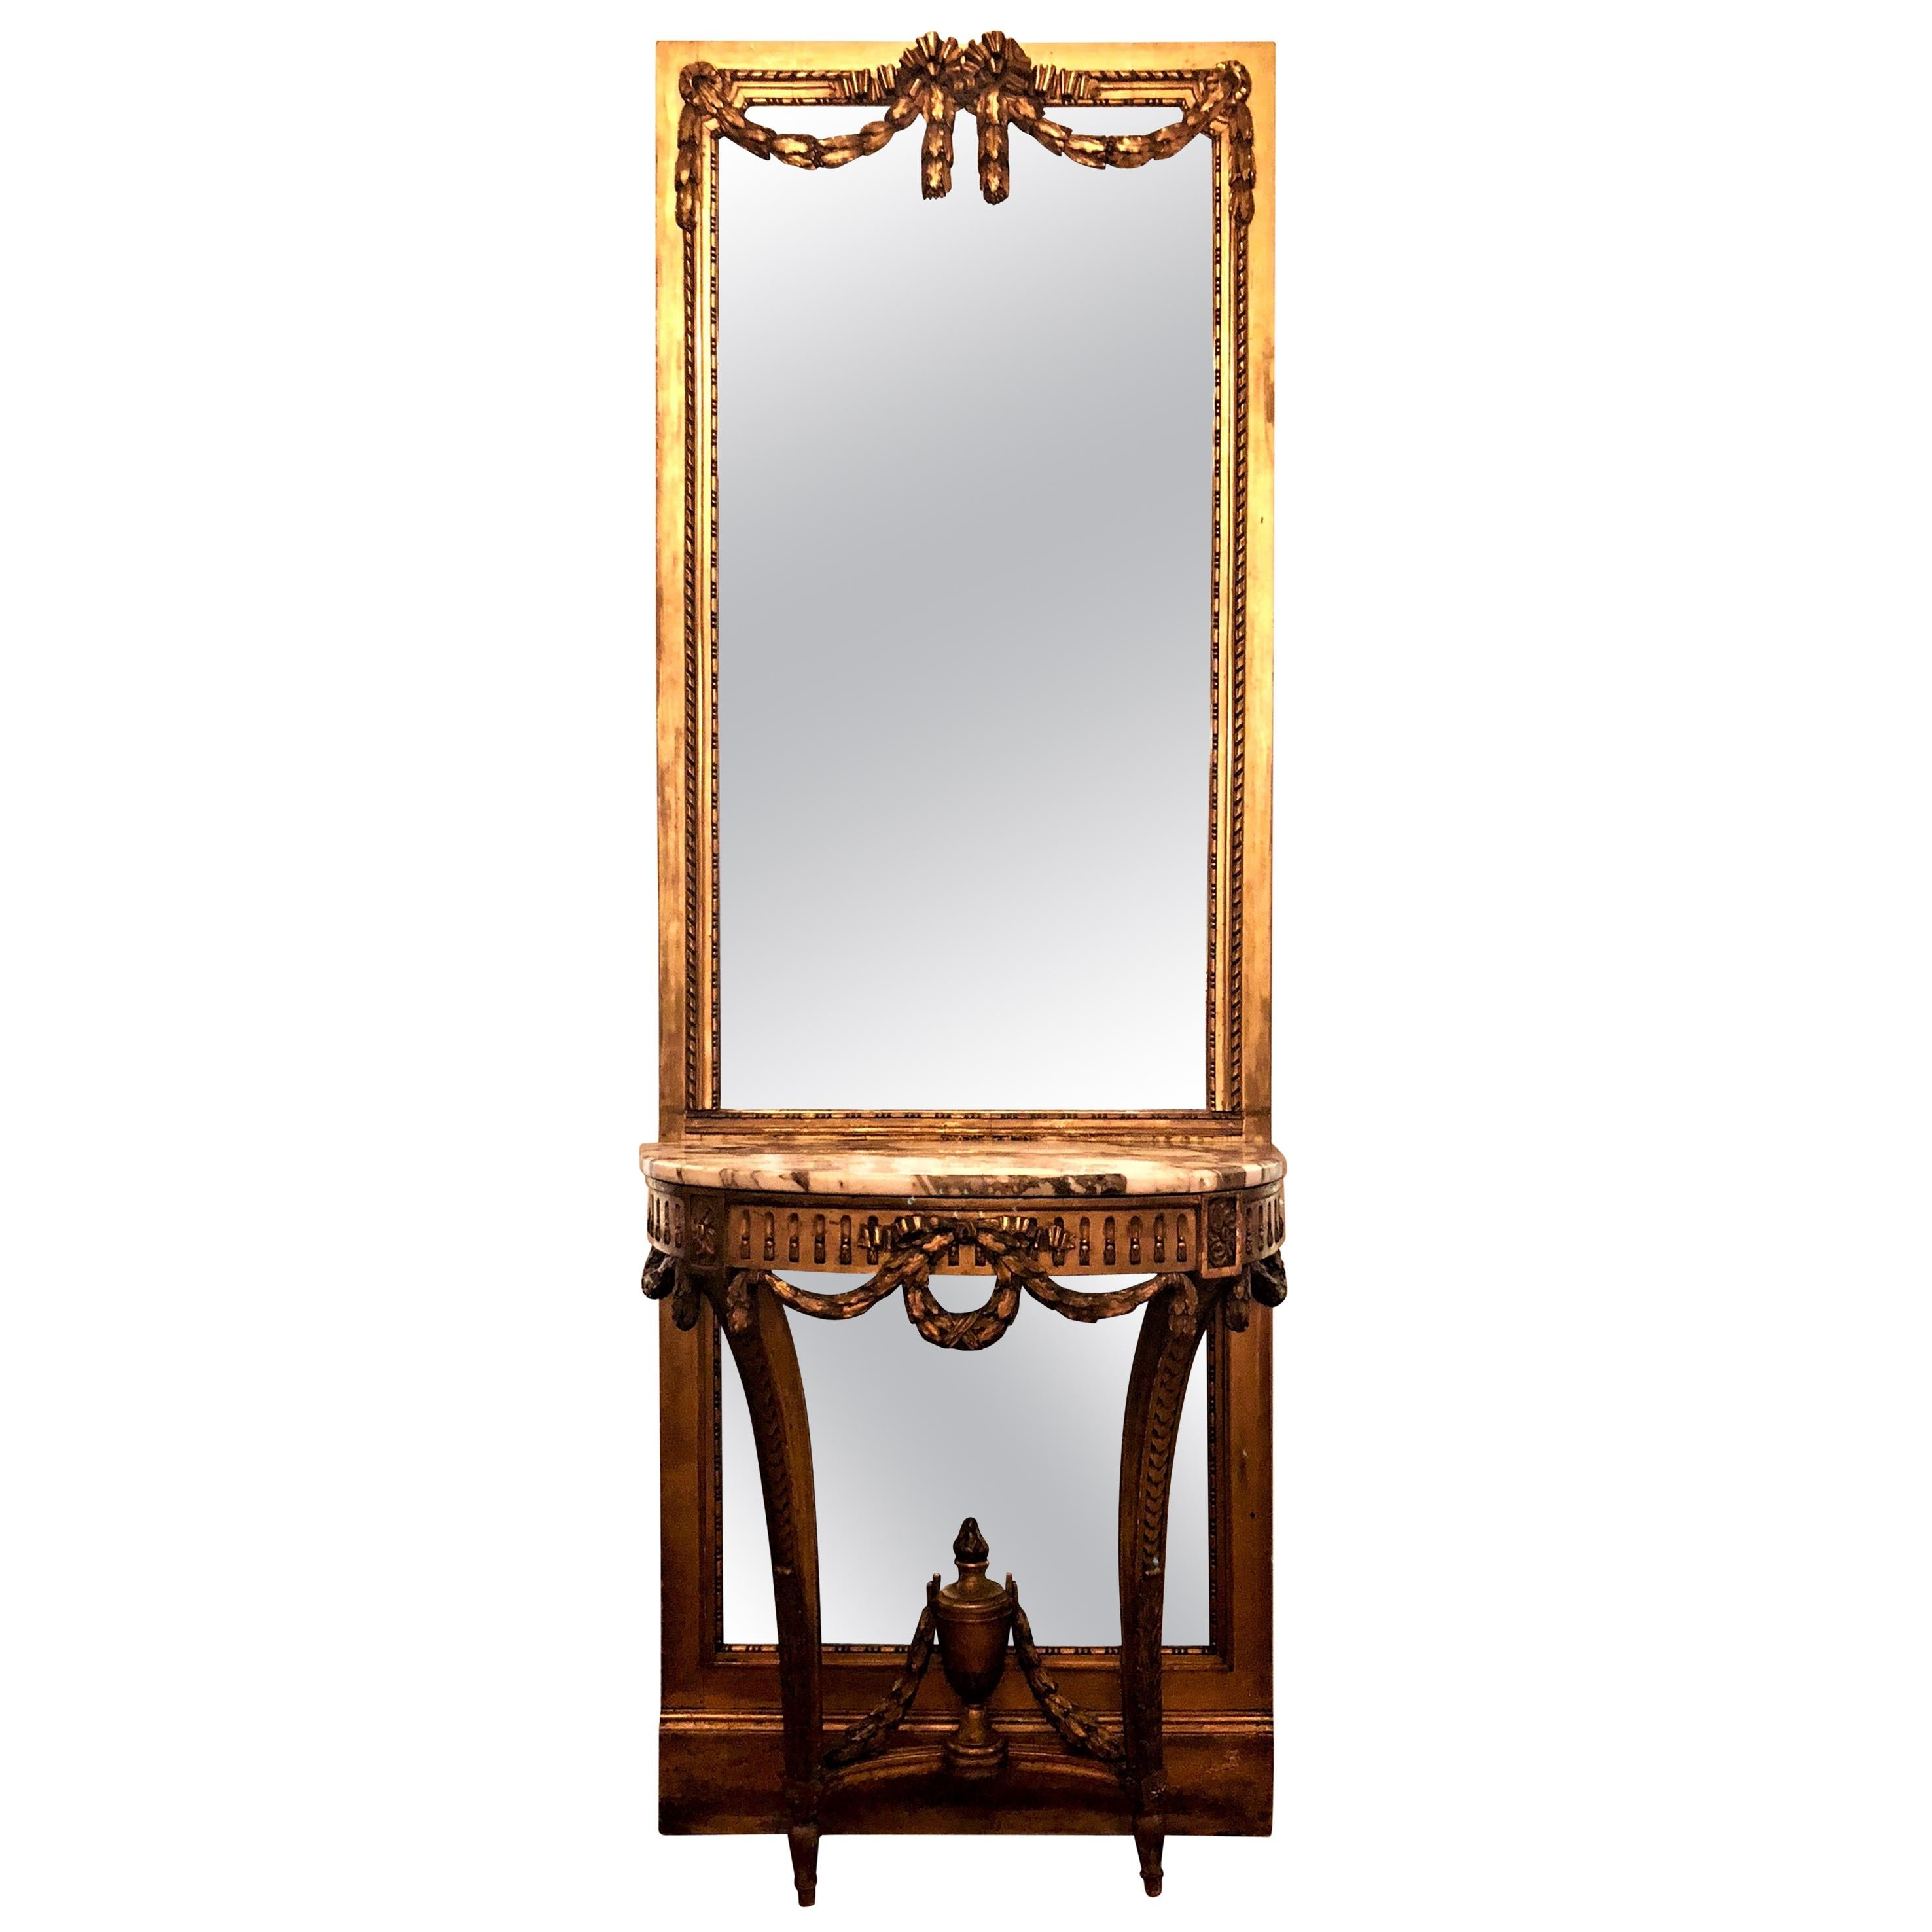 Antique French Louis XVI Marble-Top Giltwood Console Table and Mirror circa 1860